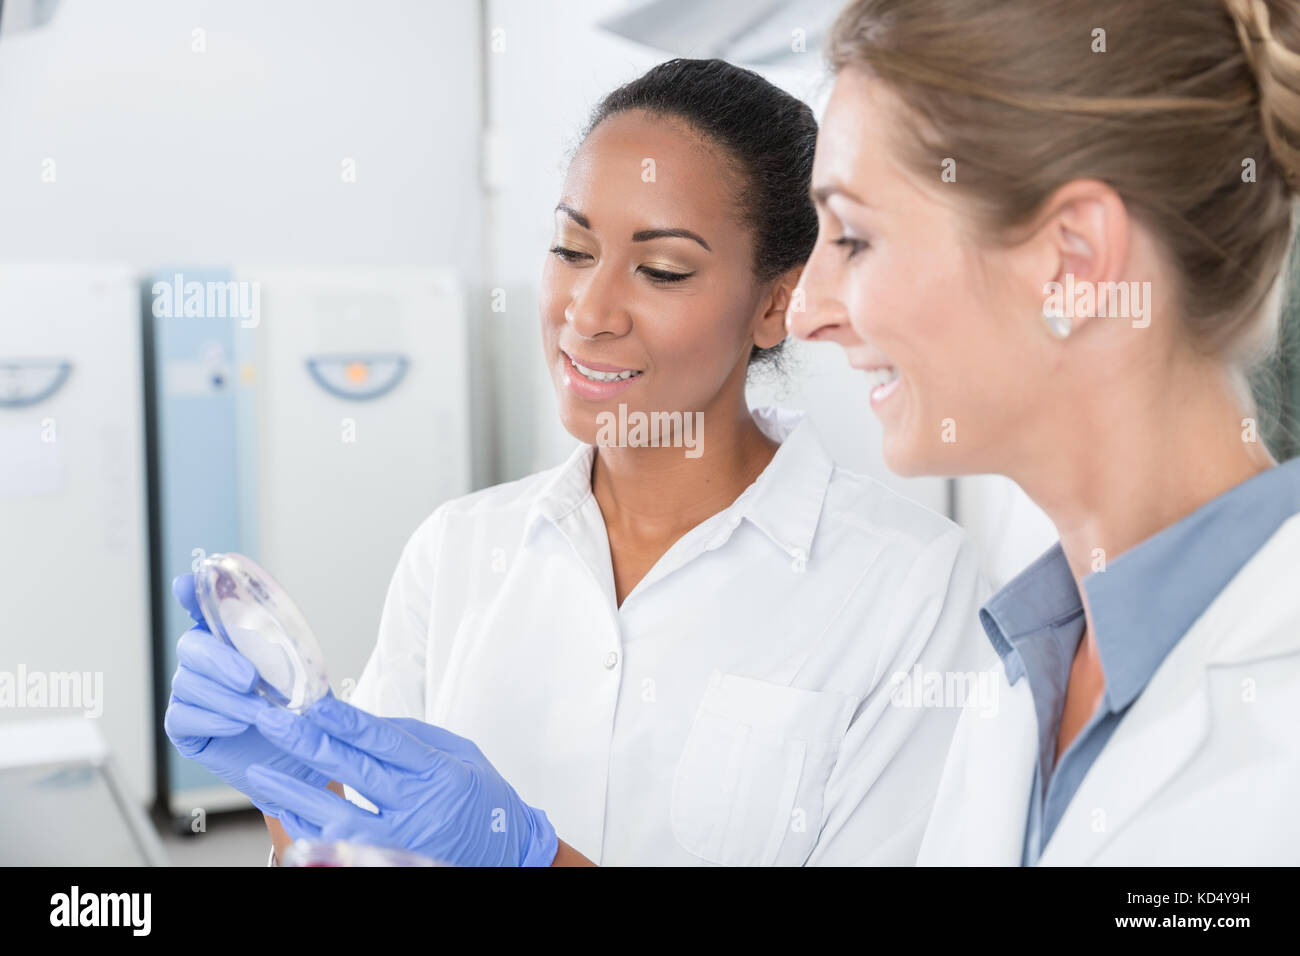 Scientists in research lab with analyzing instrument talking abo - Stock Image